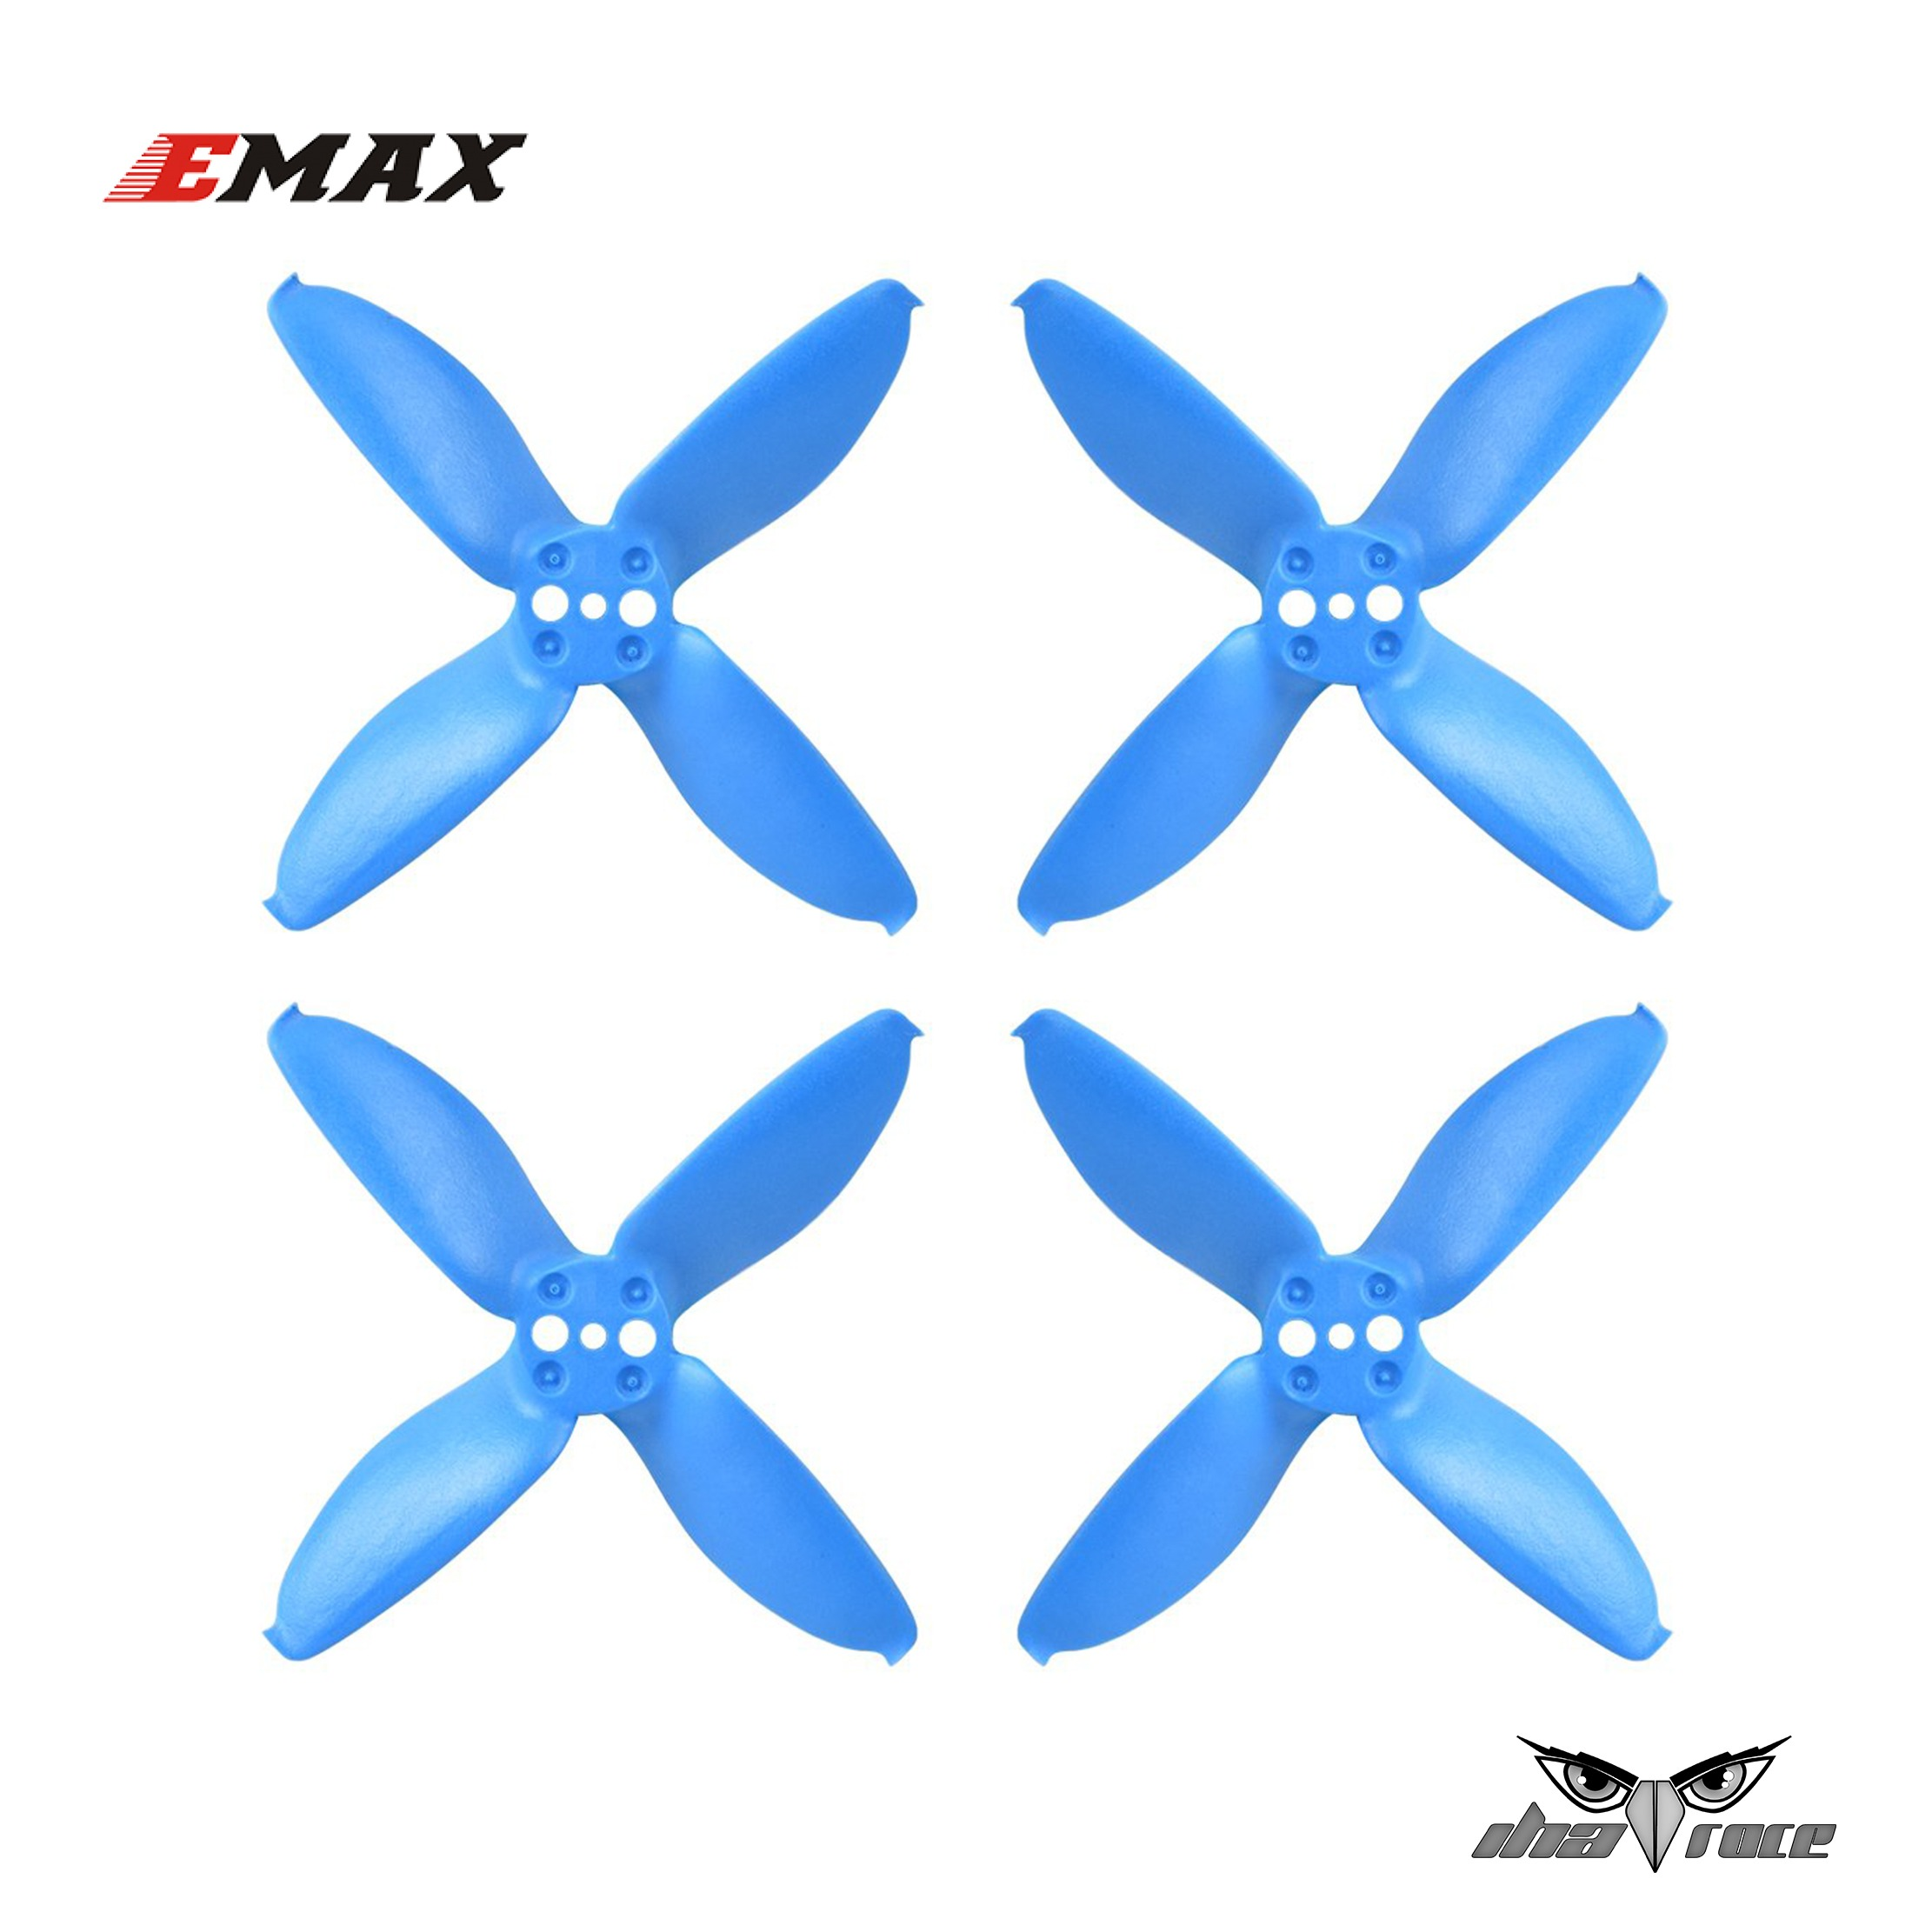 Hélices Emax 2